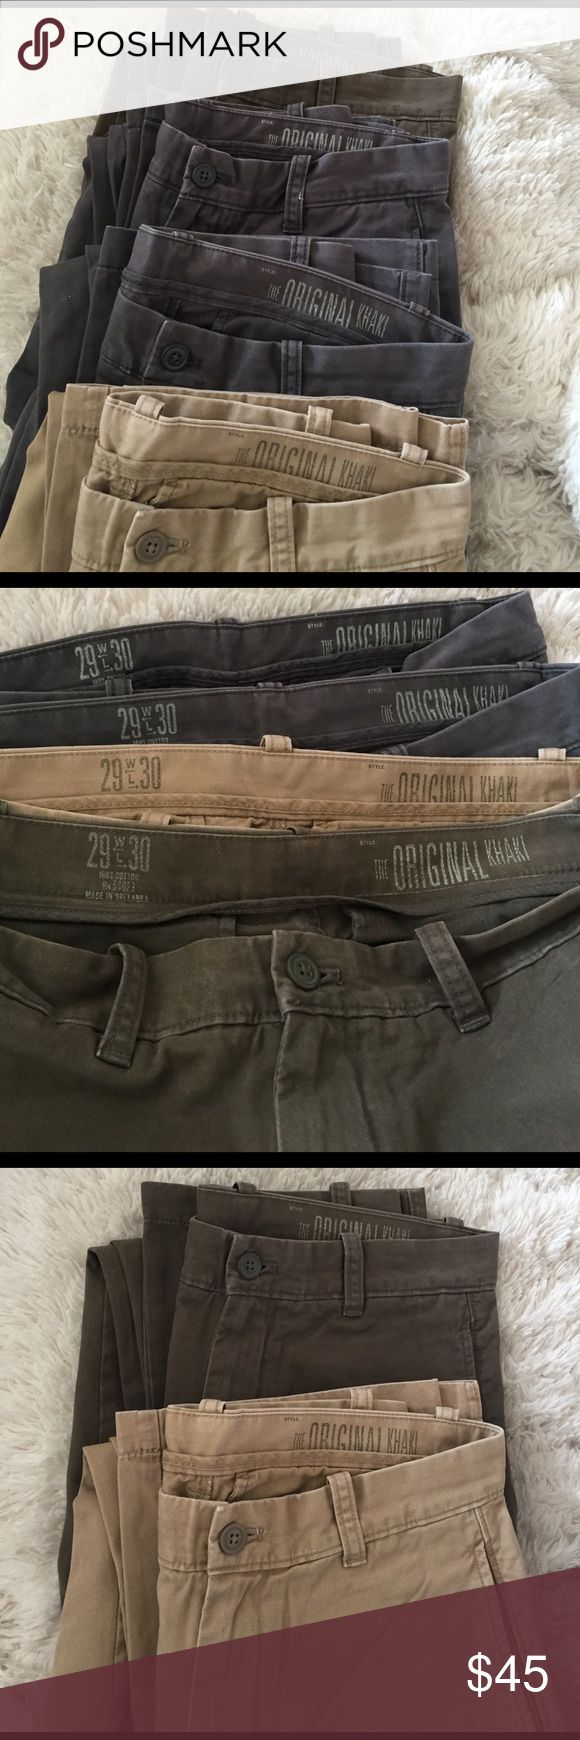 Gap Men Khaki Pants Here are four exact same style Gap Men Khaki Pants, color: brown, tan, two grey. Sizes are all the same as 29x30. Welcome for offers 😊👍🏻 GAP Pants Chinos & Khakis